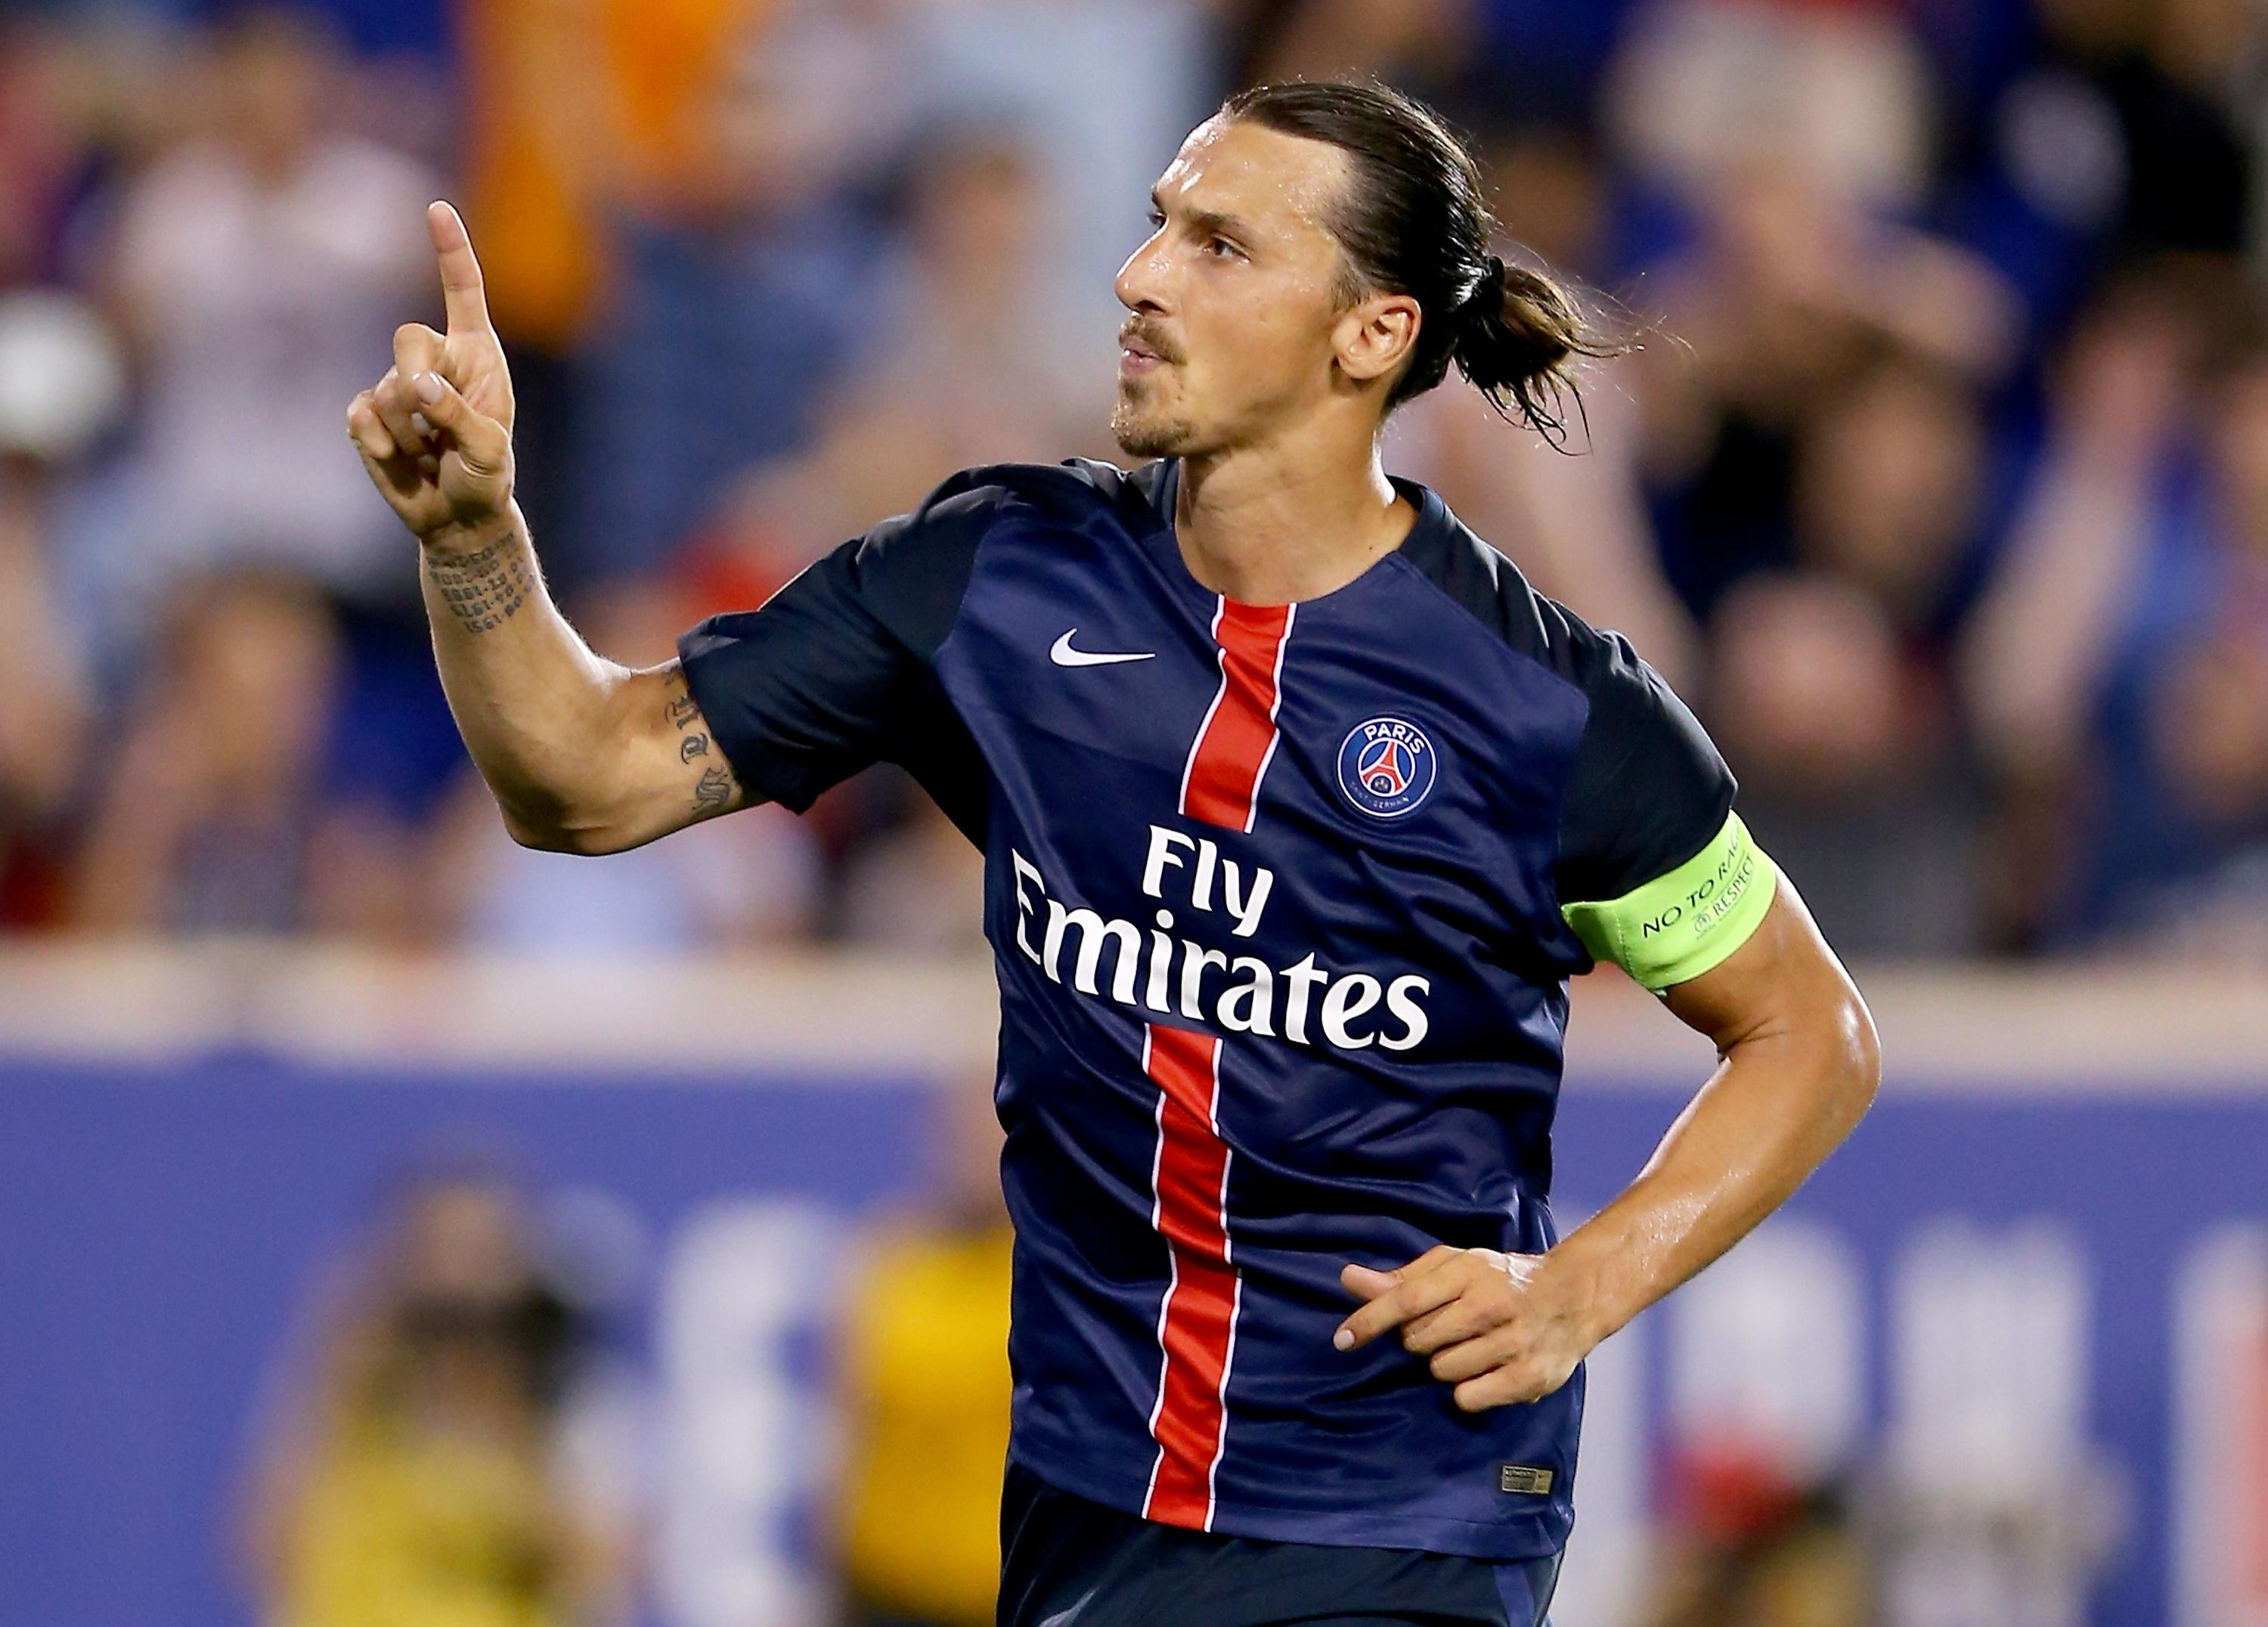 Zlatan Ibrahimovic says absolutely he d like to play in Major